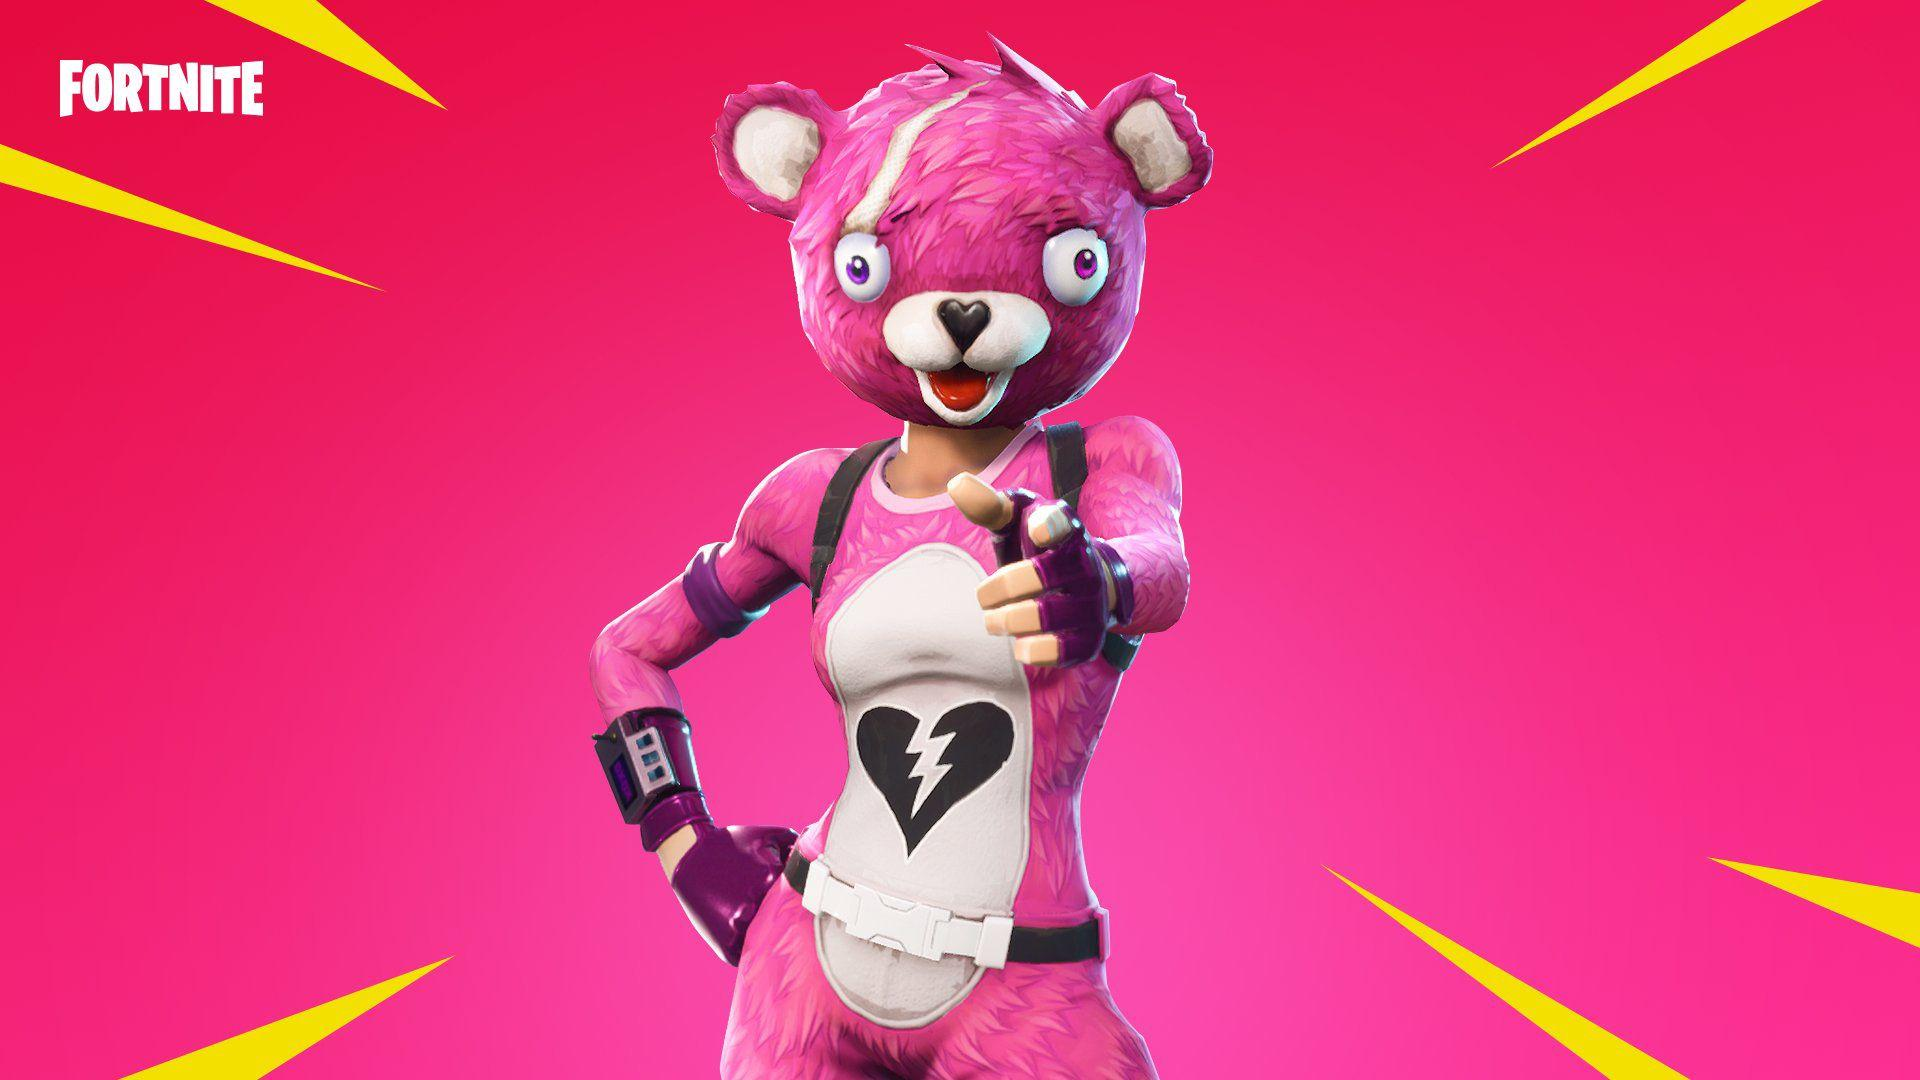 Cuddle Team Leader Fortnite Wallpapers Wallpaper Cave